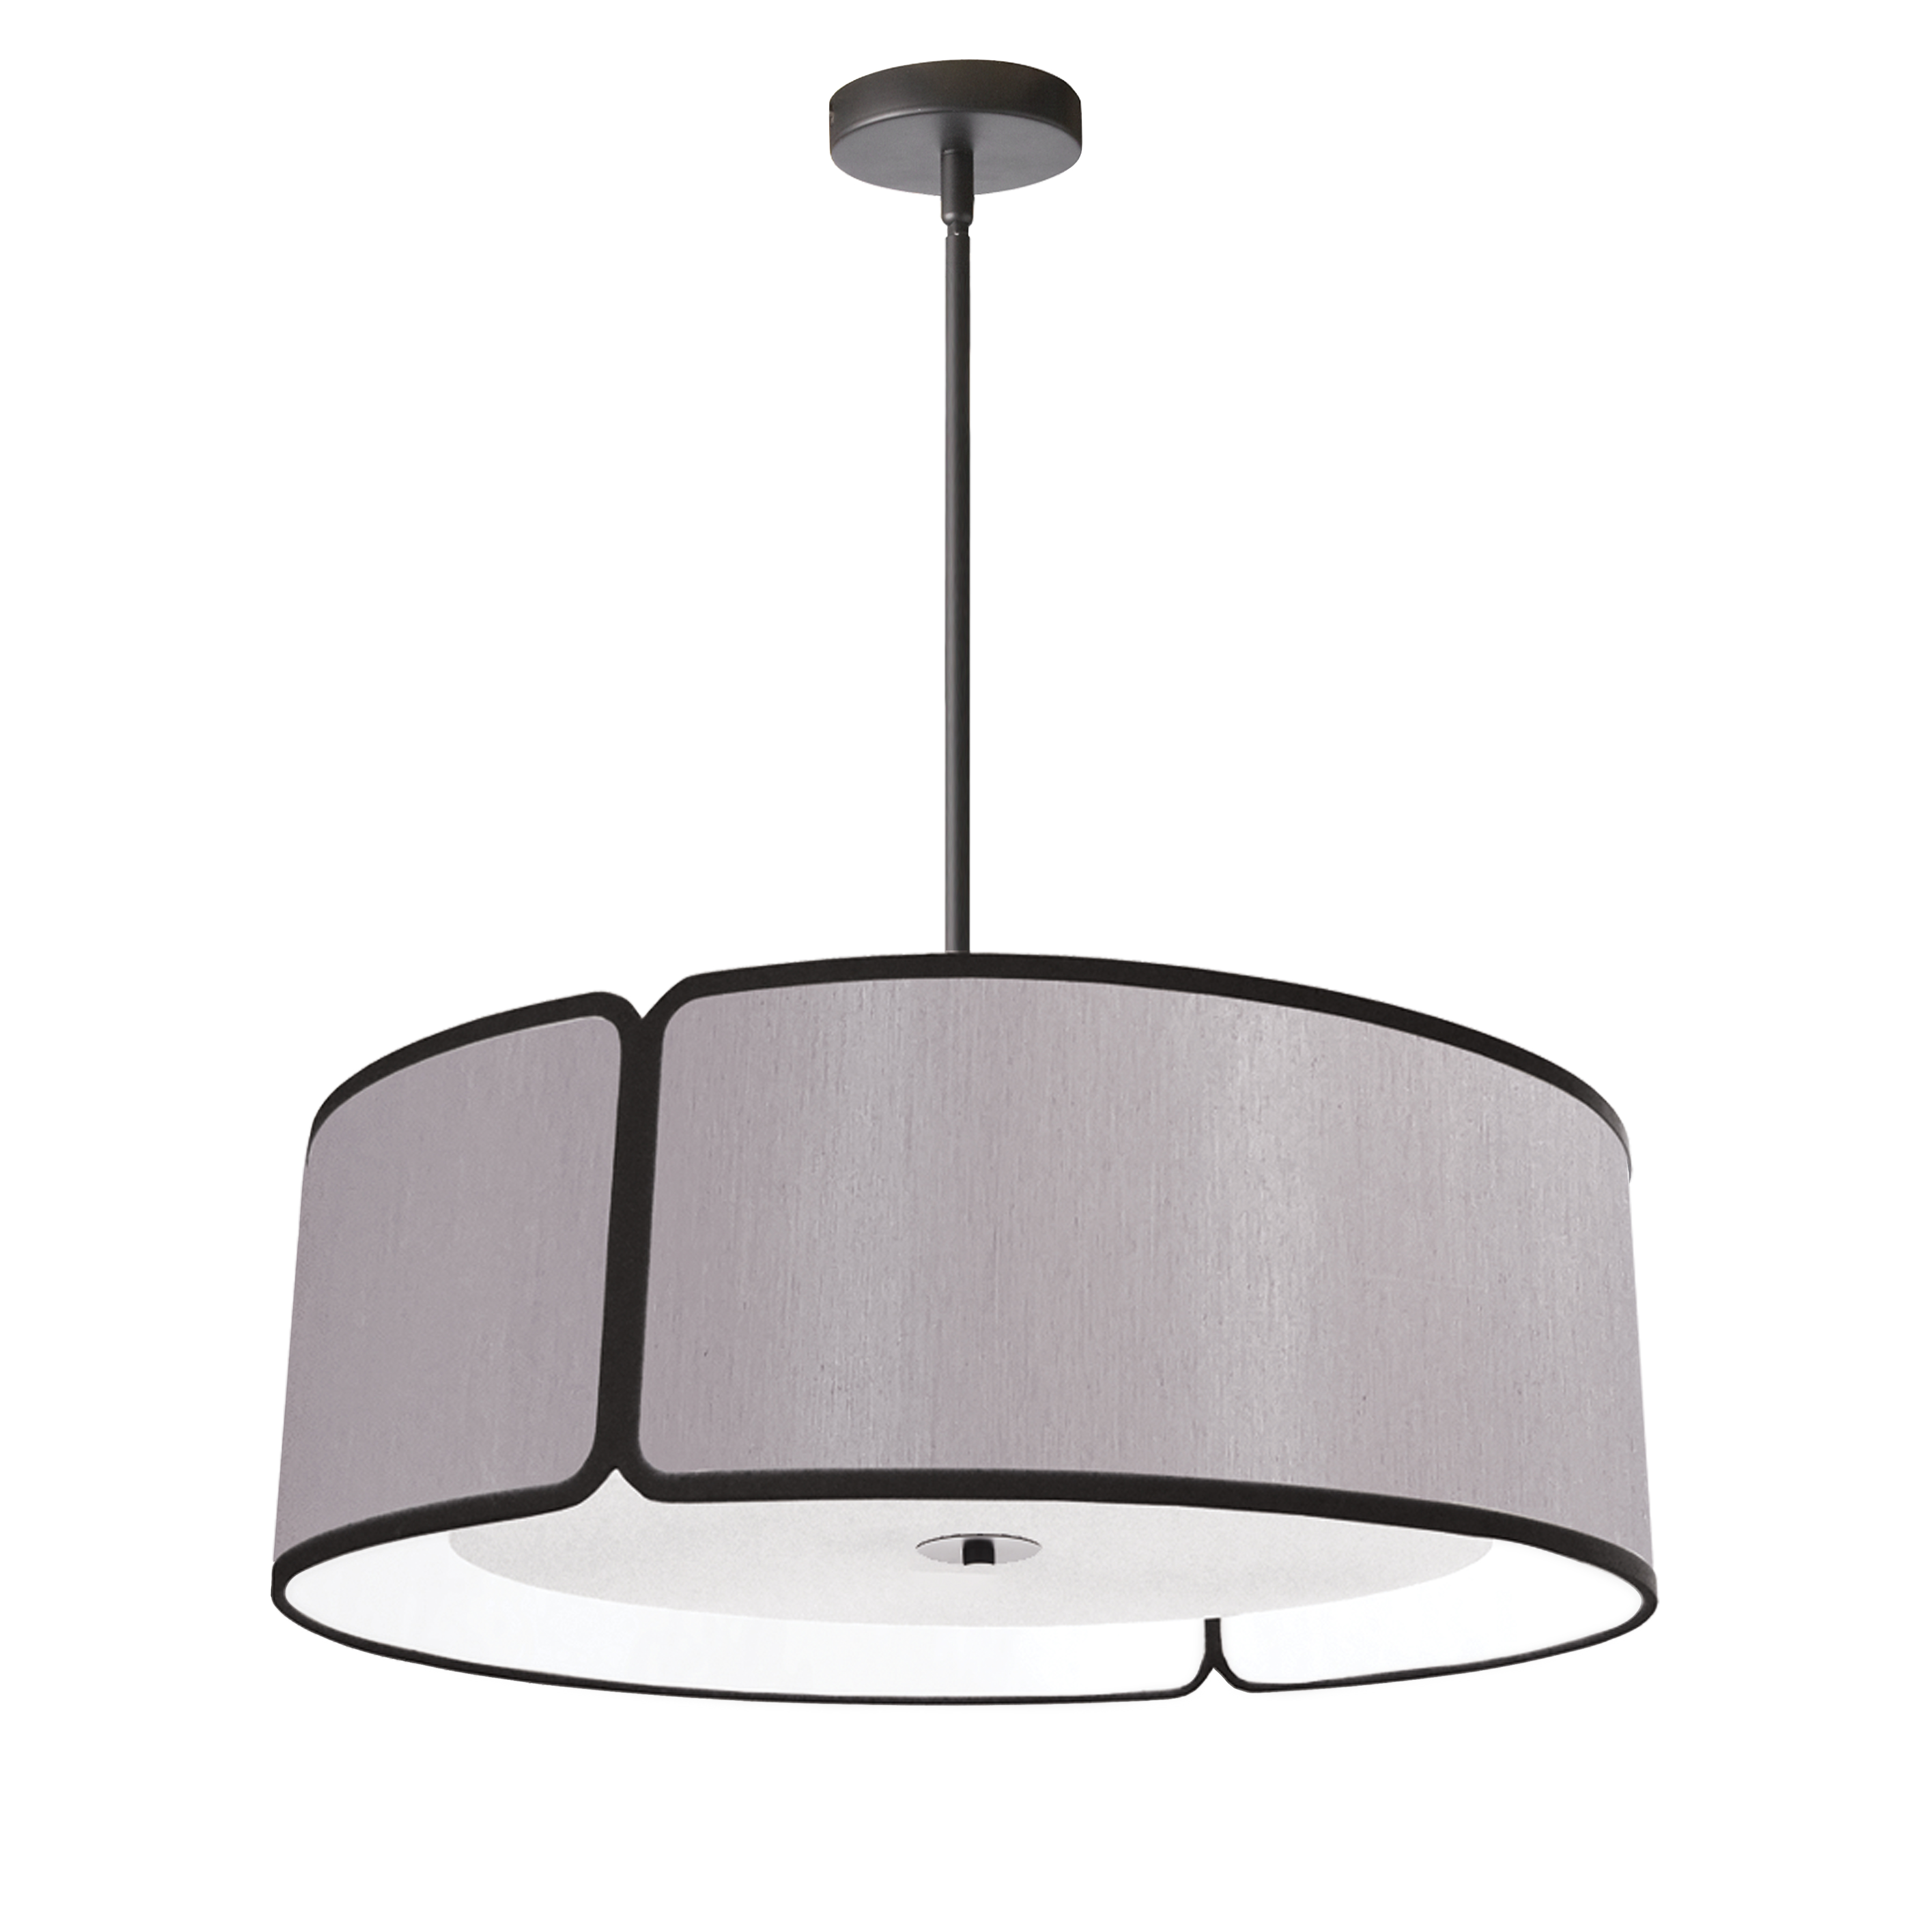 4 Light Black Notched Drum Pendant, Grey Shade and White Diffuser